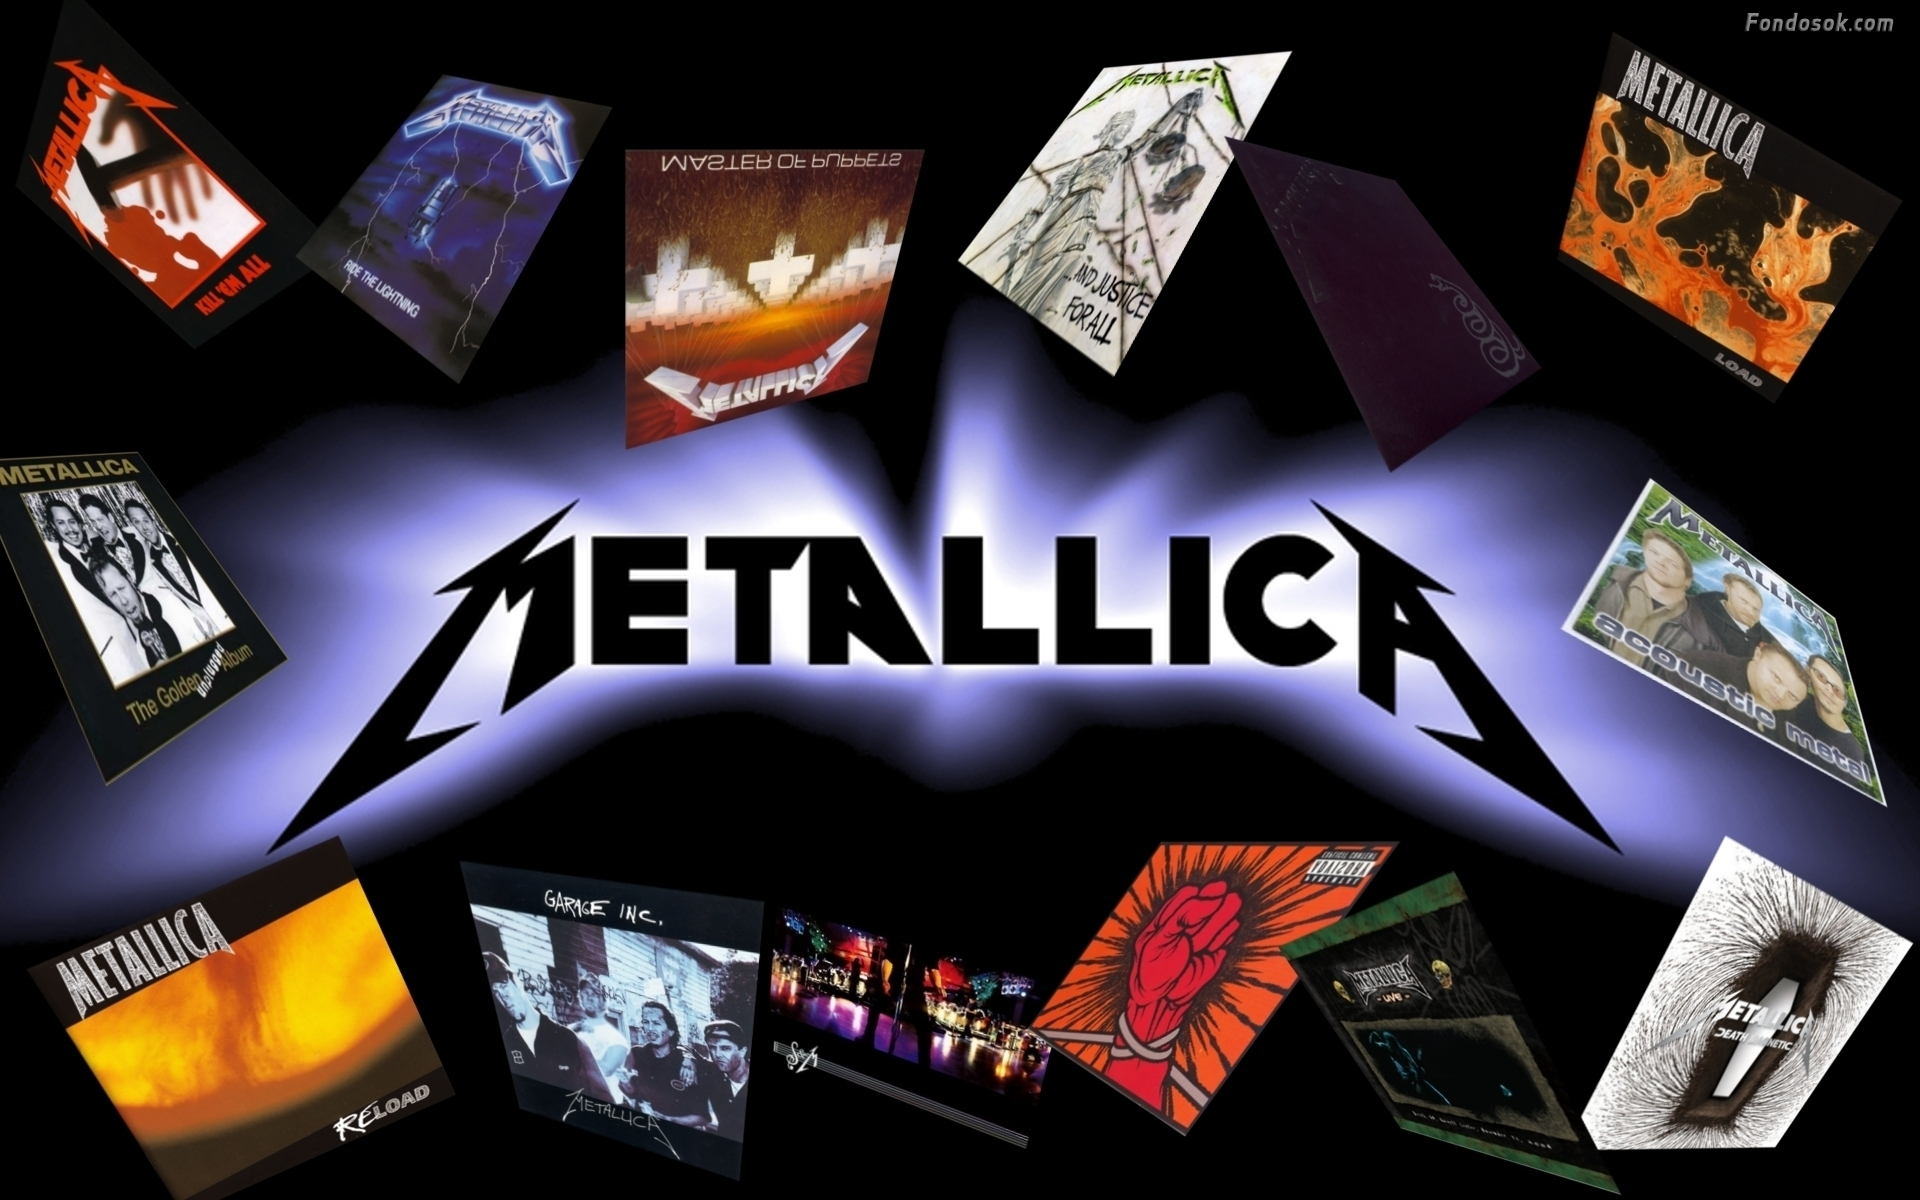 metallica albums hd wallpaper. Black Bedroom Furniture Sets. Home Design Ideas